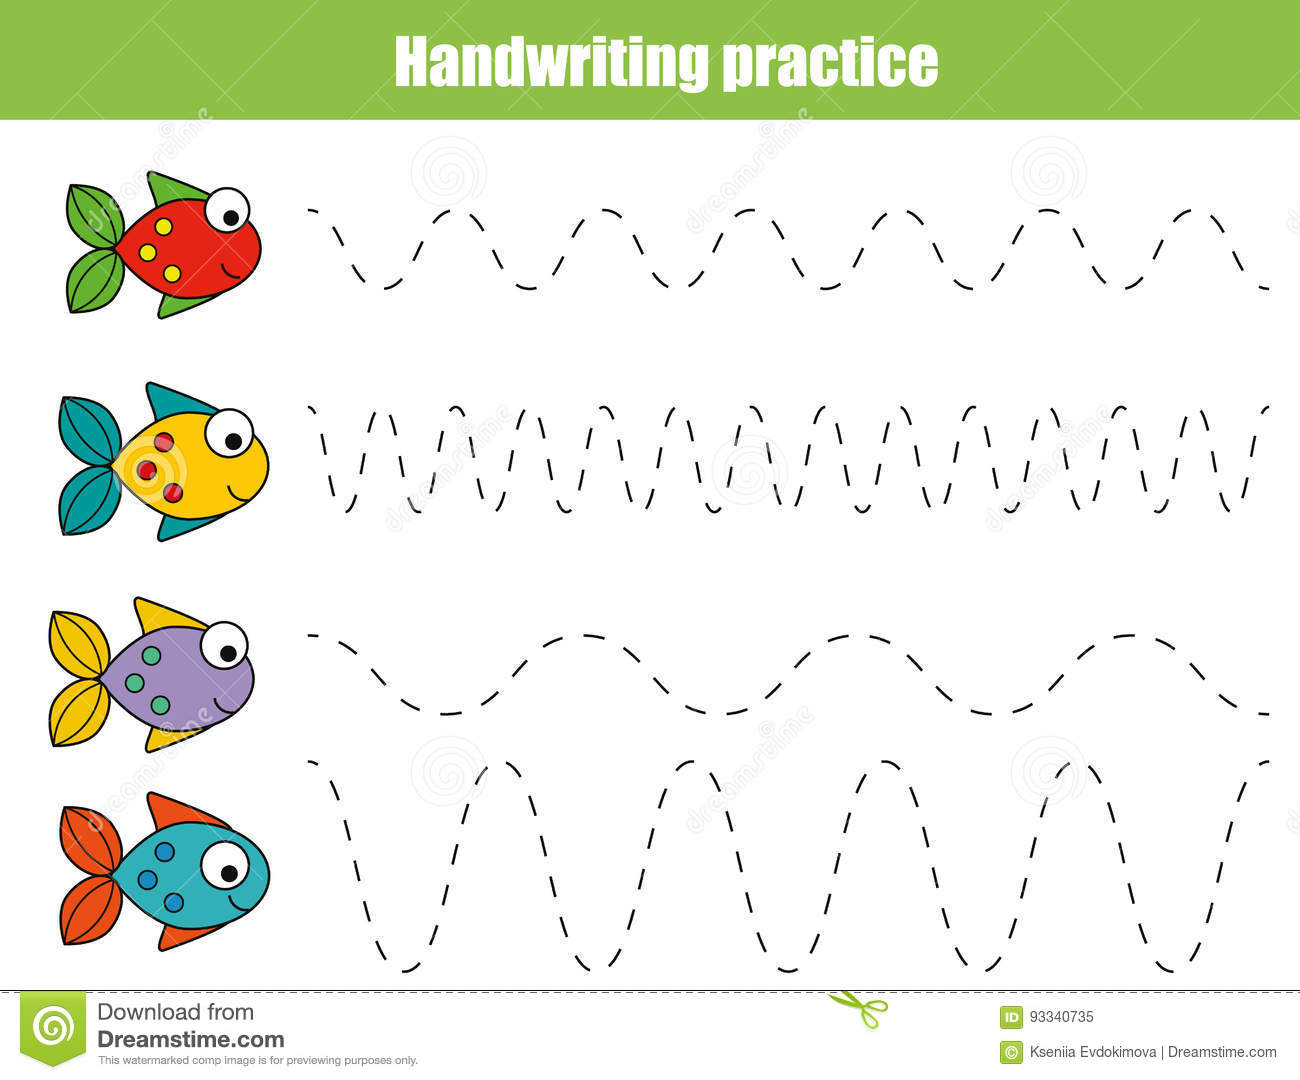 Handwriting Practice Sheet Educational Children Game Printable Worksheet For Kids With Wavy